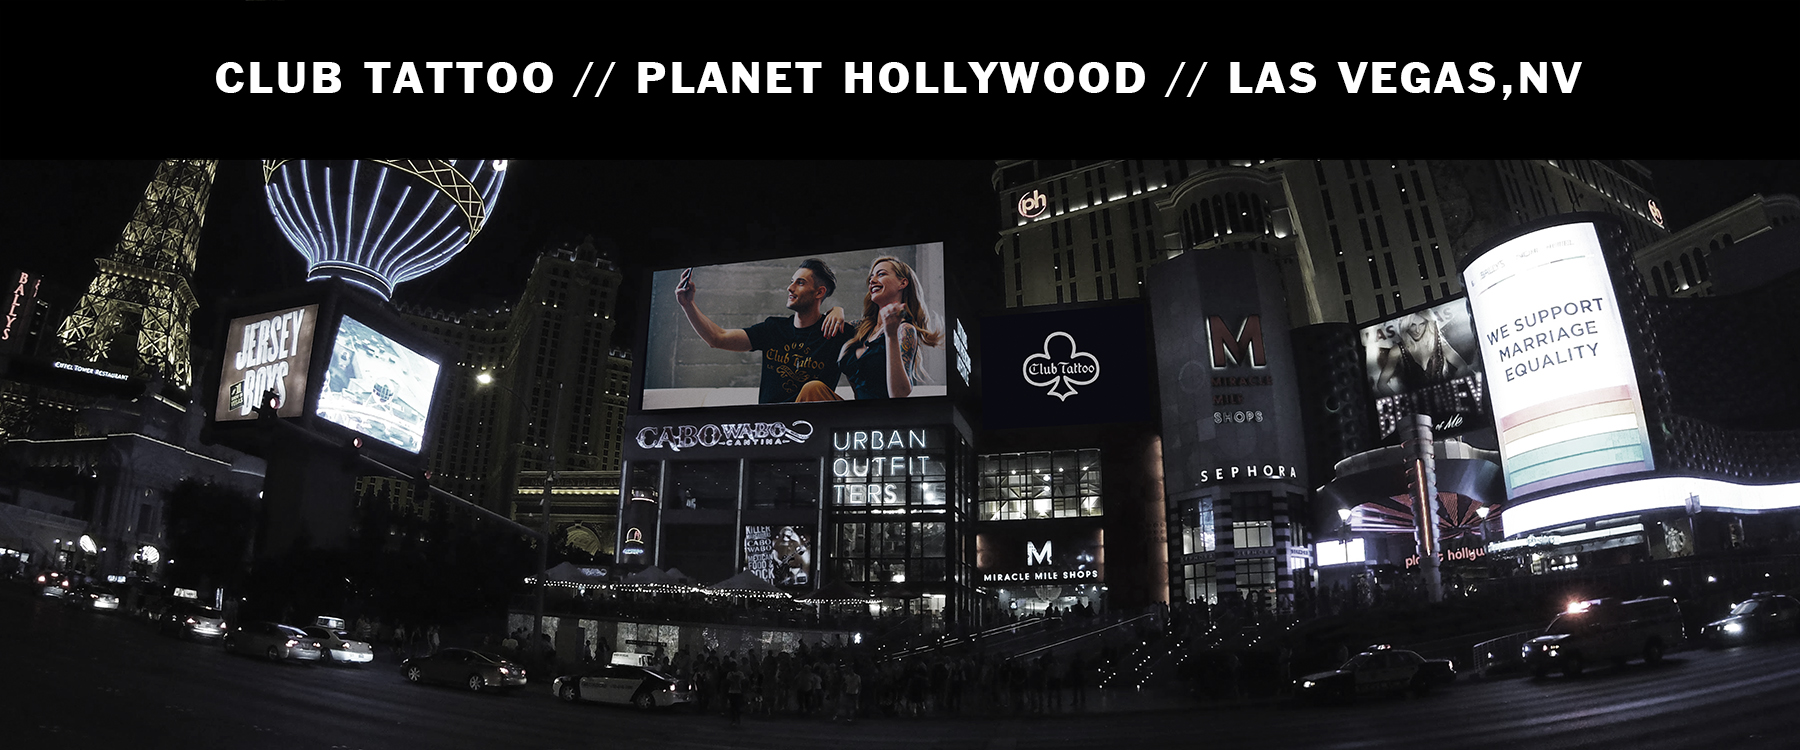 Las Vegas - Planet Hollywood – Club Tattoo